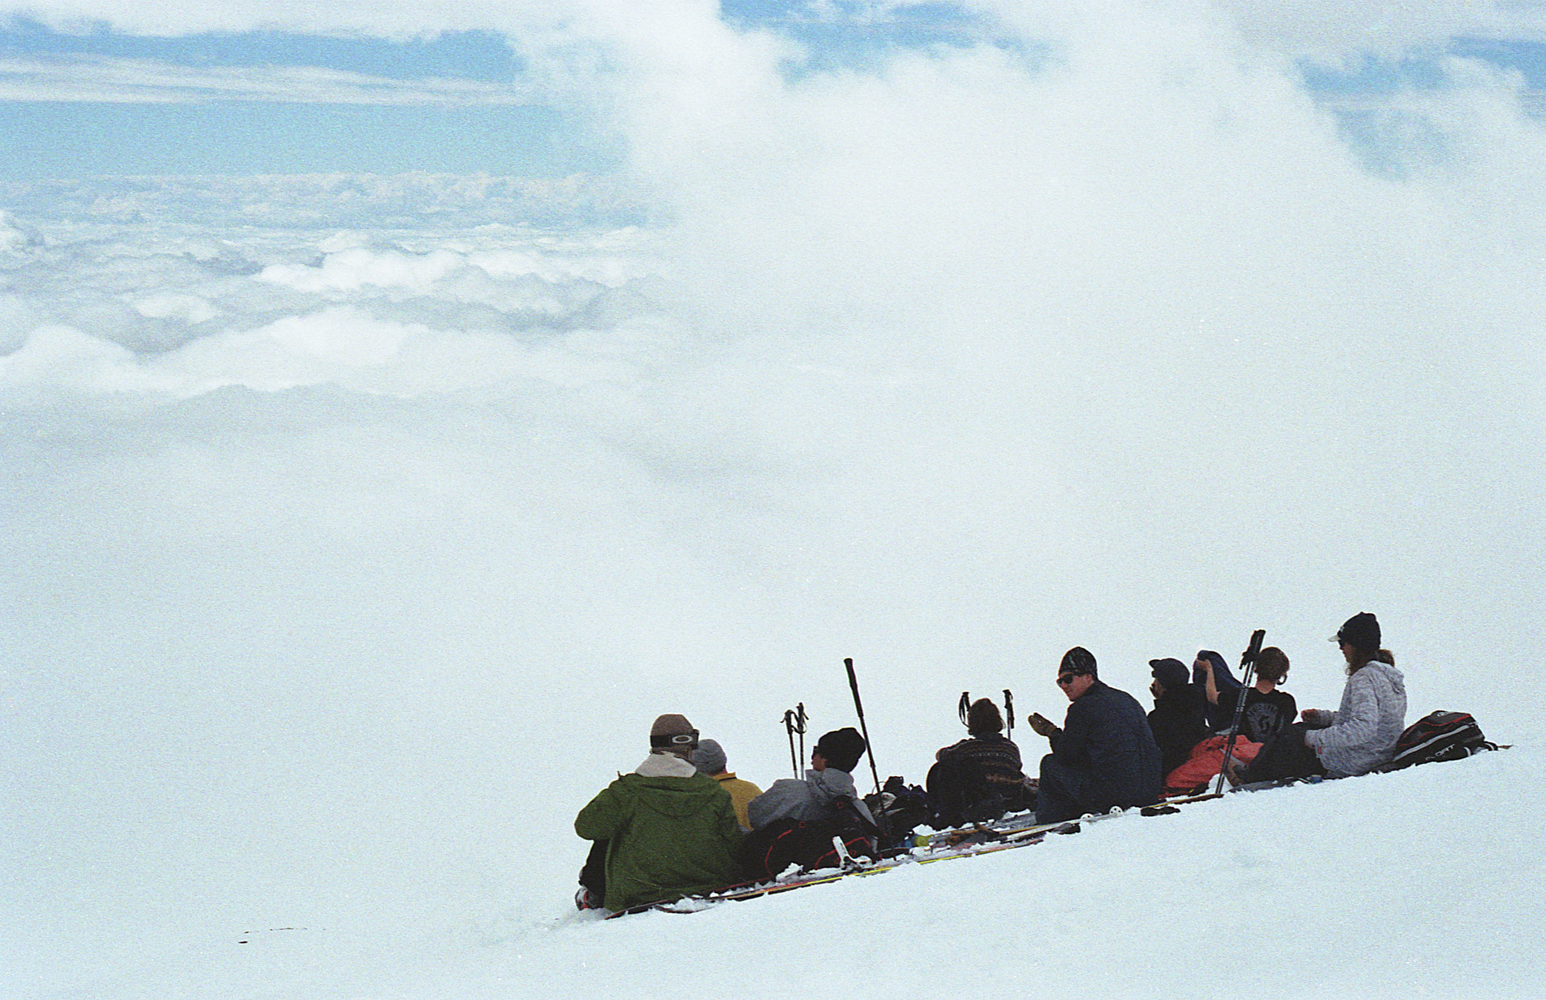 01-15 Group sitting on hill in clouds.jpg